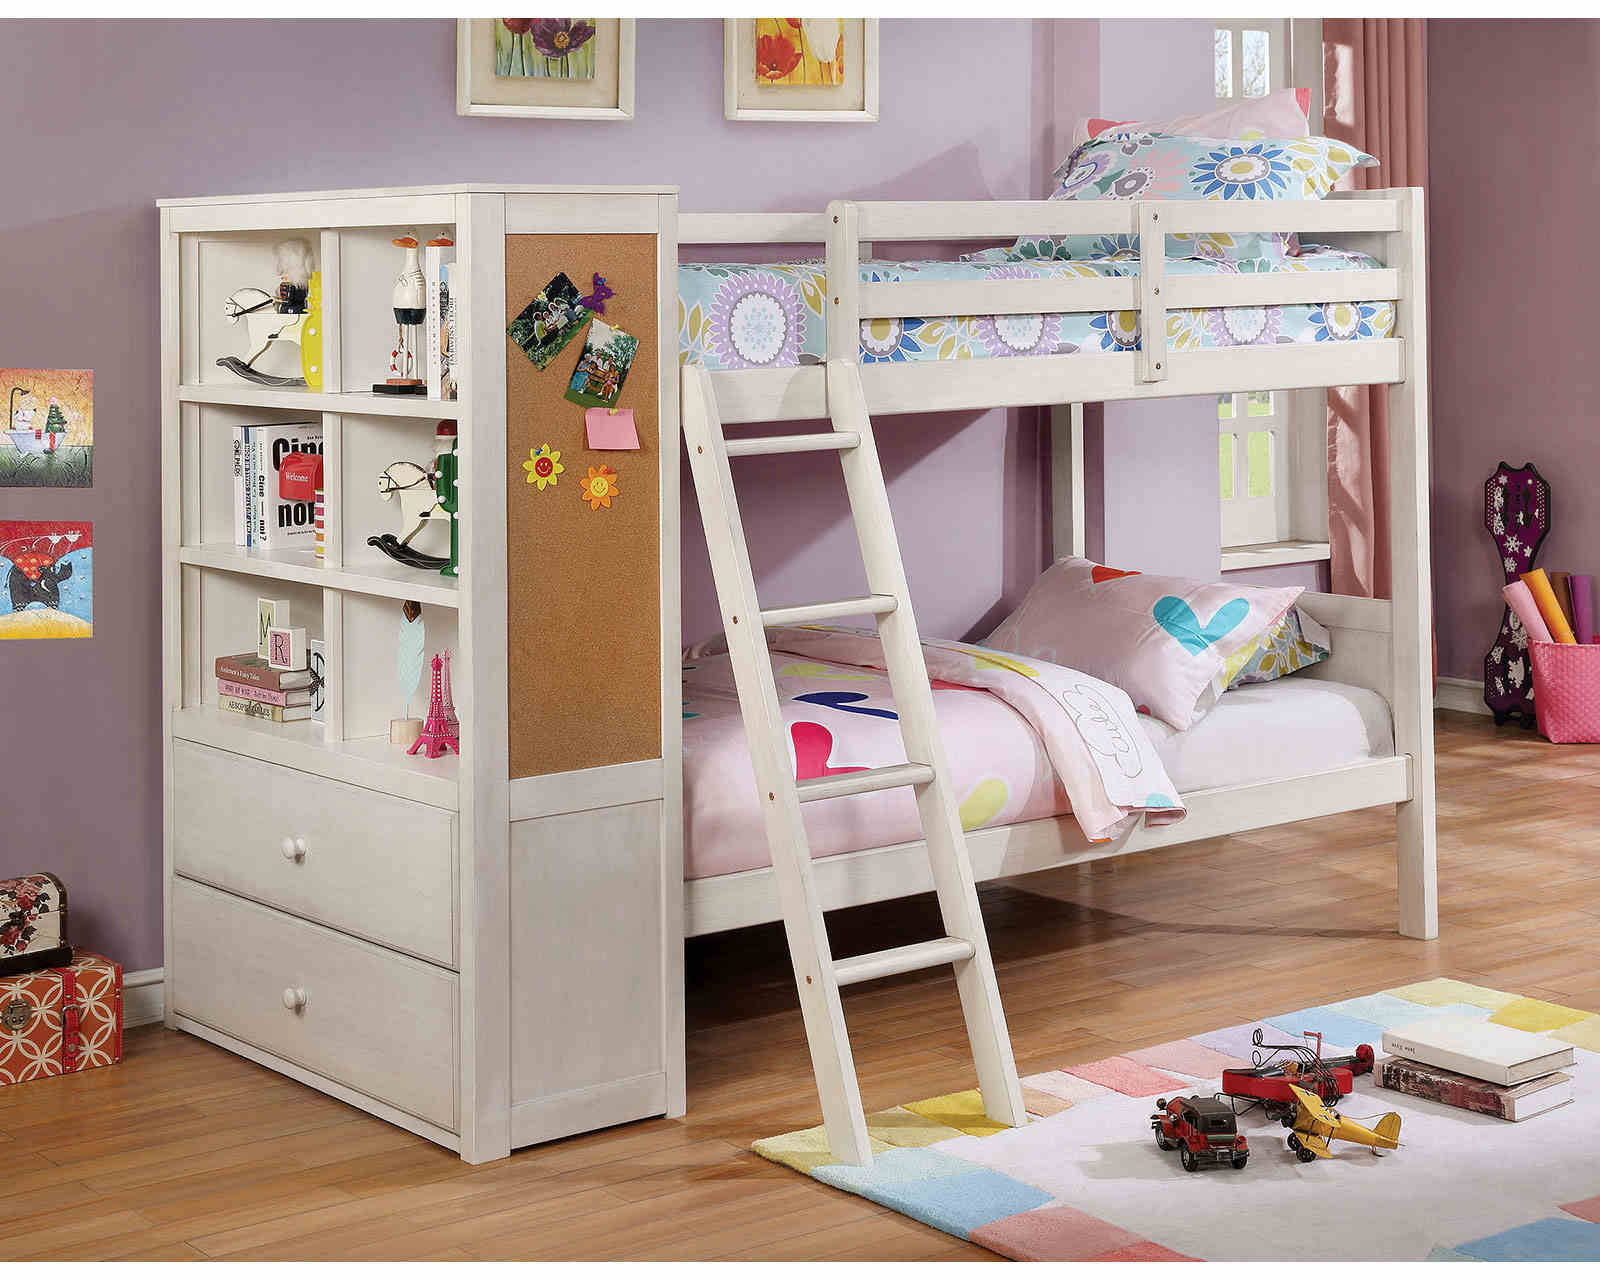 bunk bed with storage-bookcase - kidsroom.vip